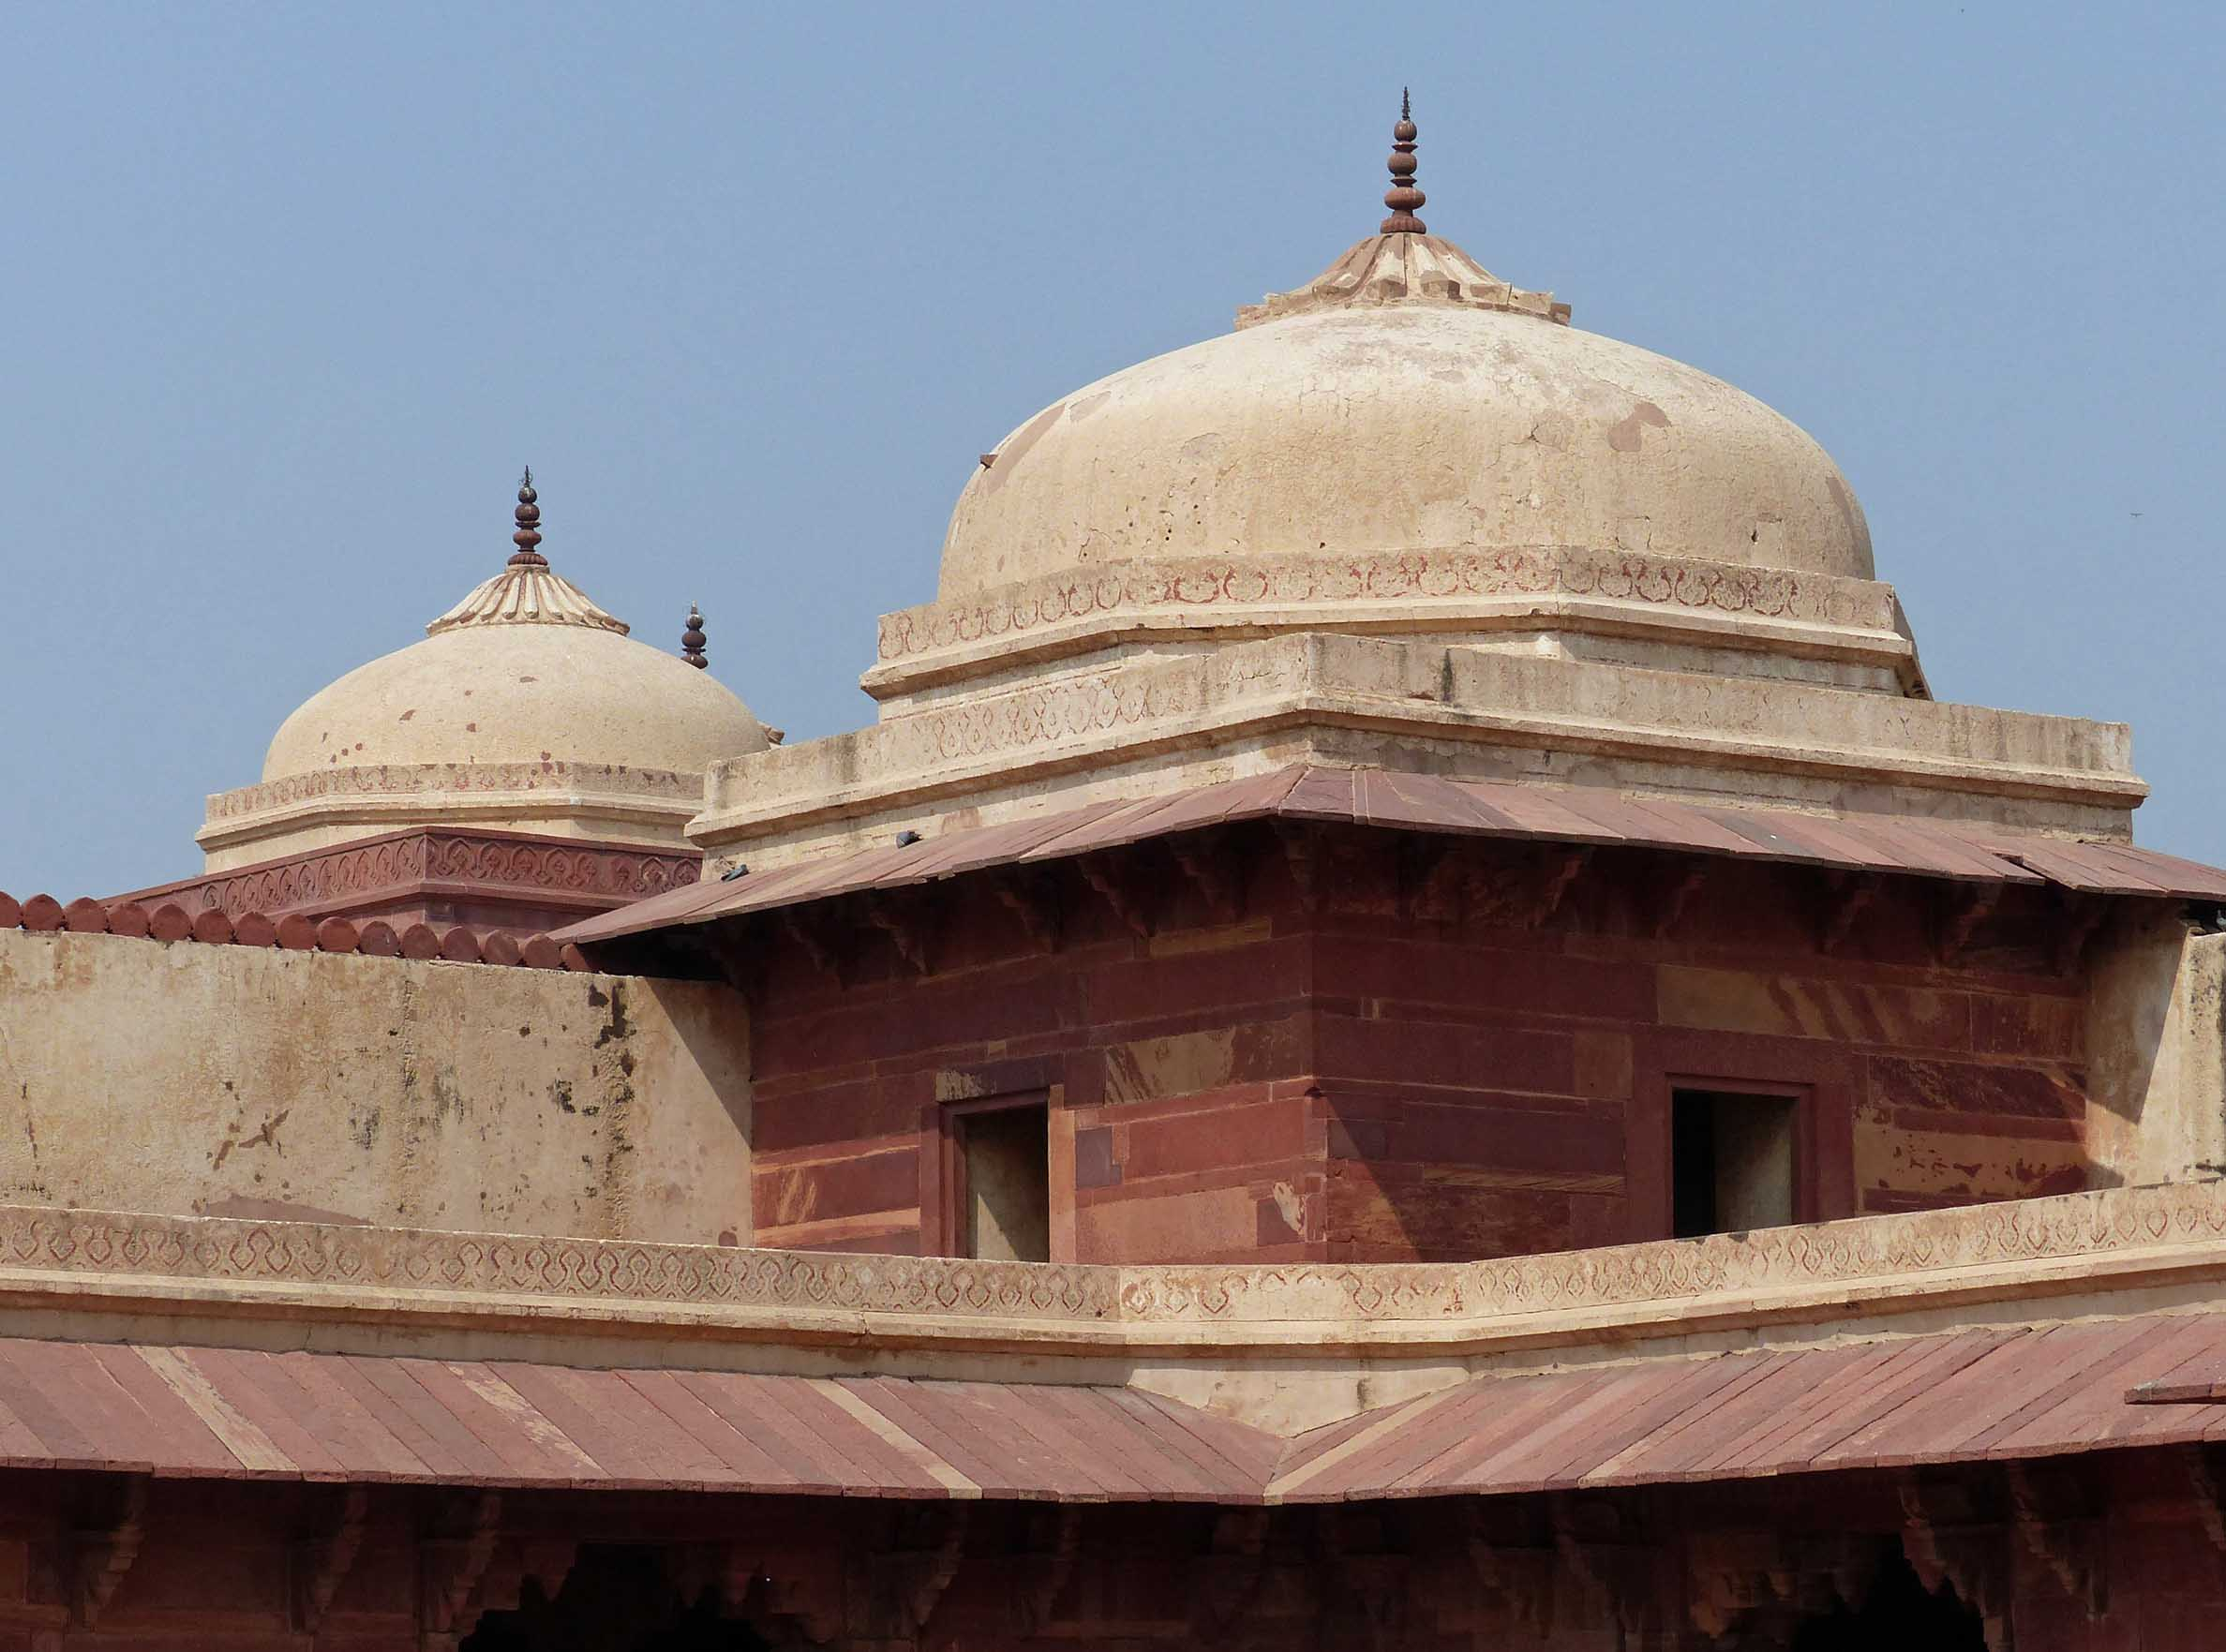 Red sandstone building with cream domes